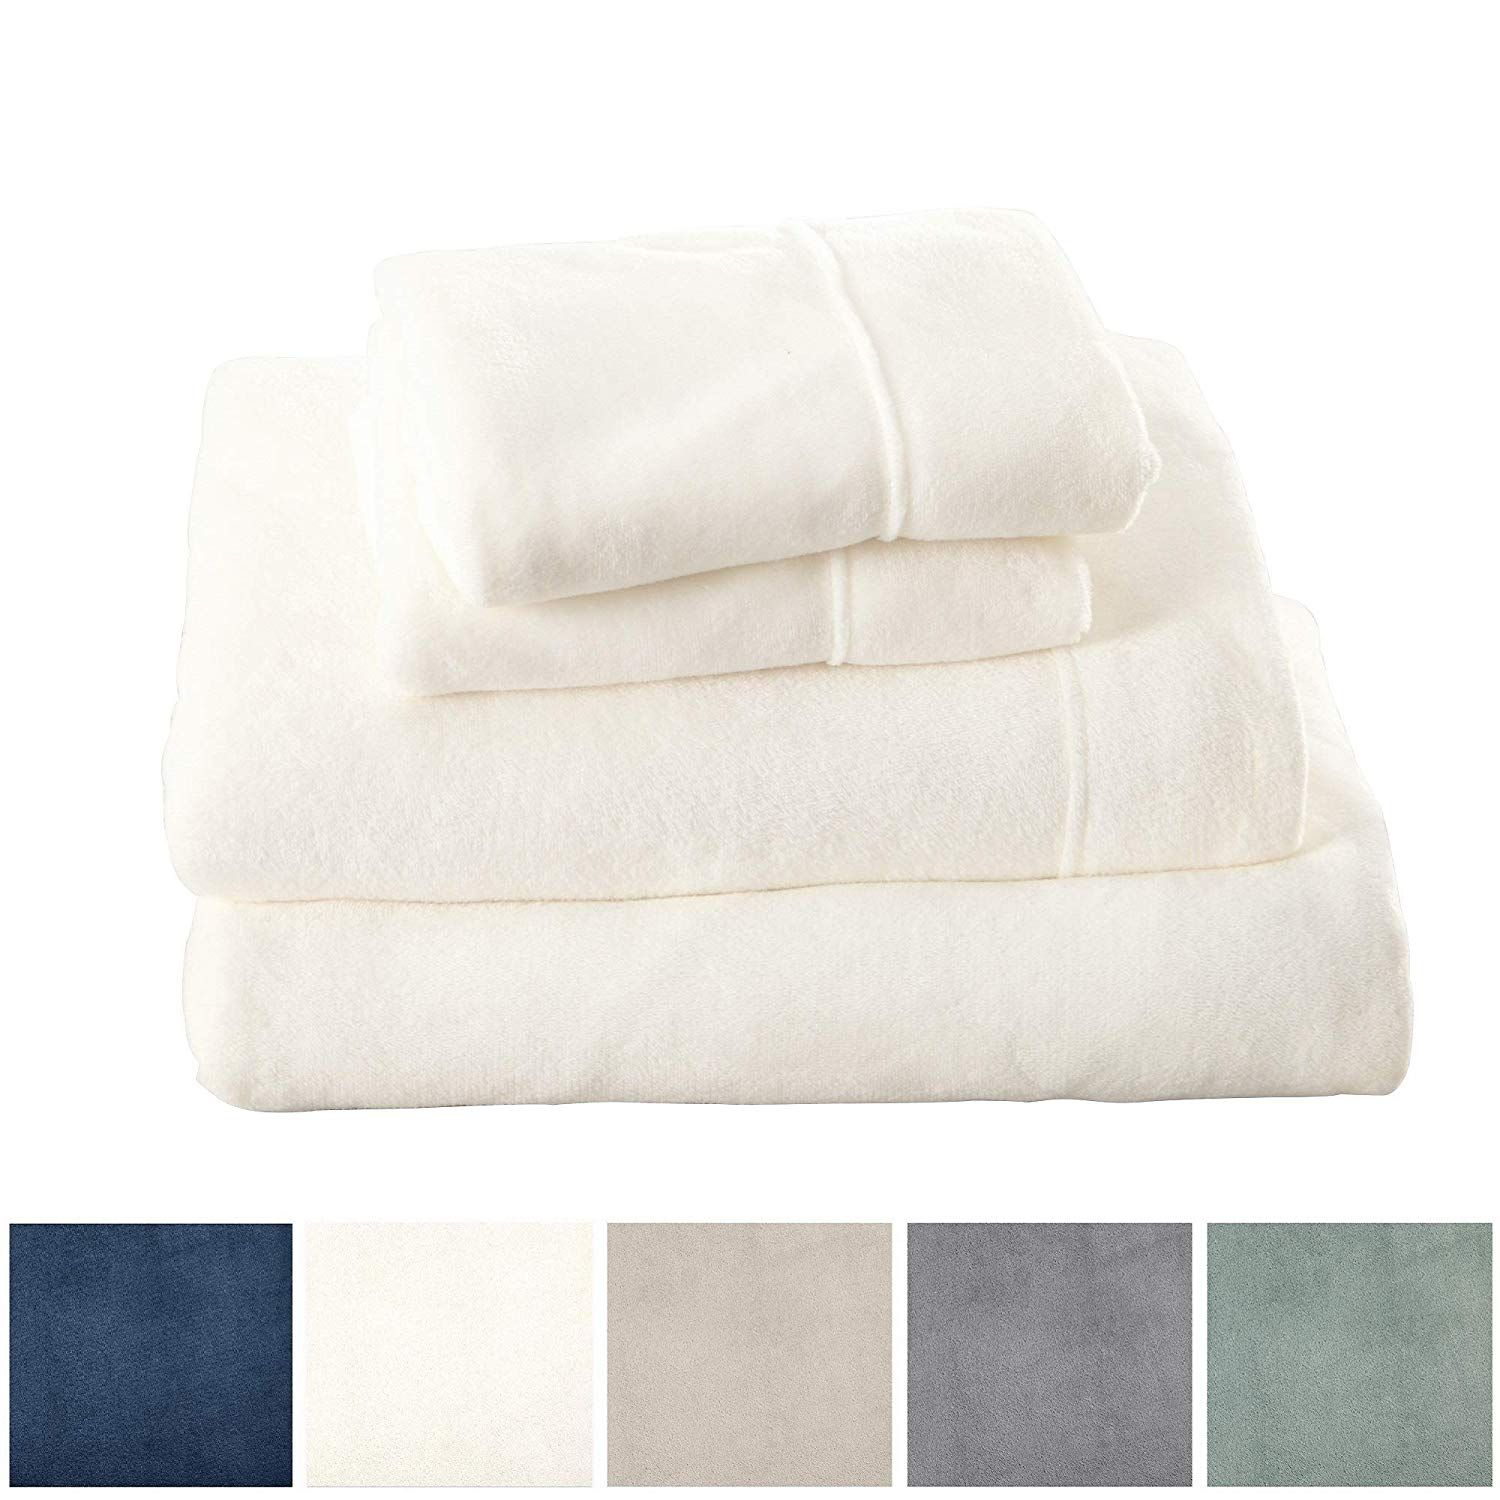 Full, Denim Blue Deluxe Bed Sheets with Deep Pockets Velvet Luxe Collection Great Bay Home Extra Soft Cozy Velvet Plush Sheet Set